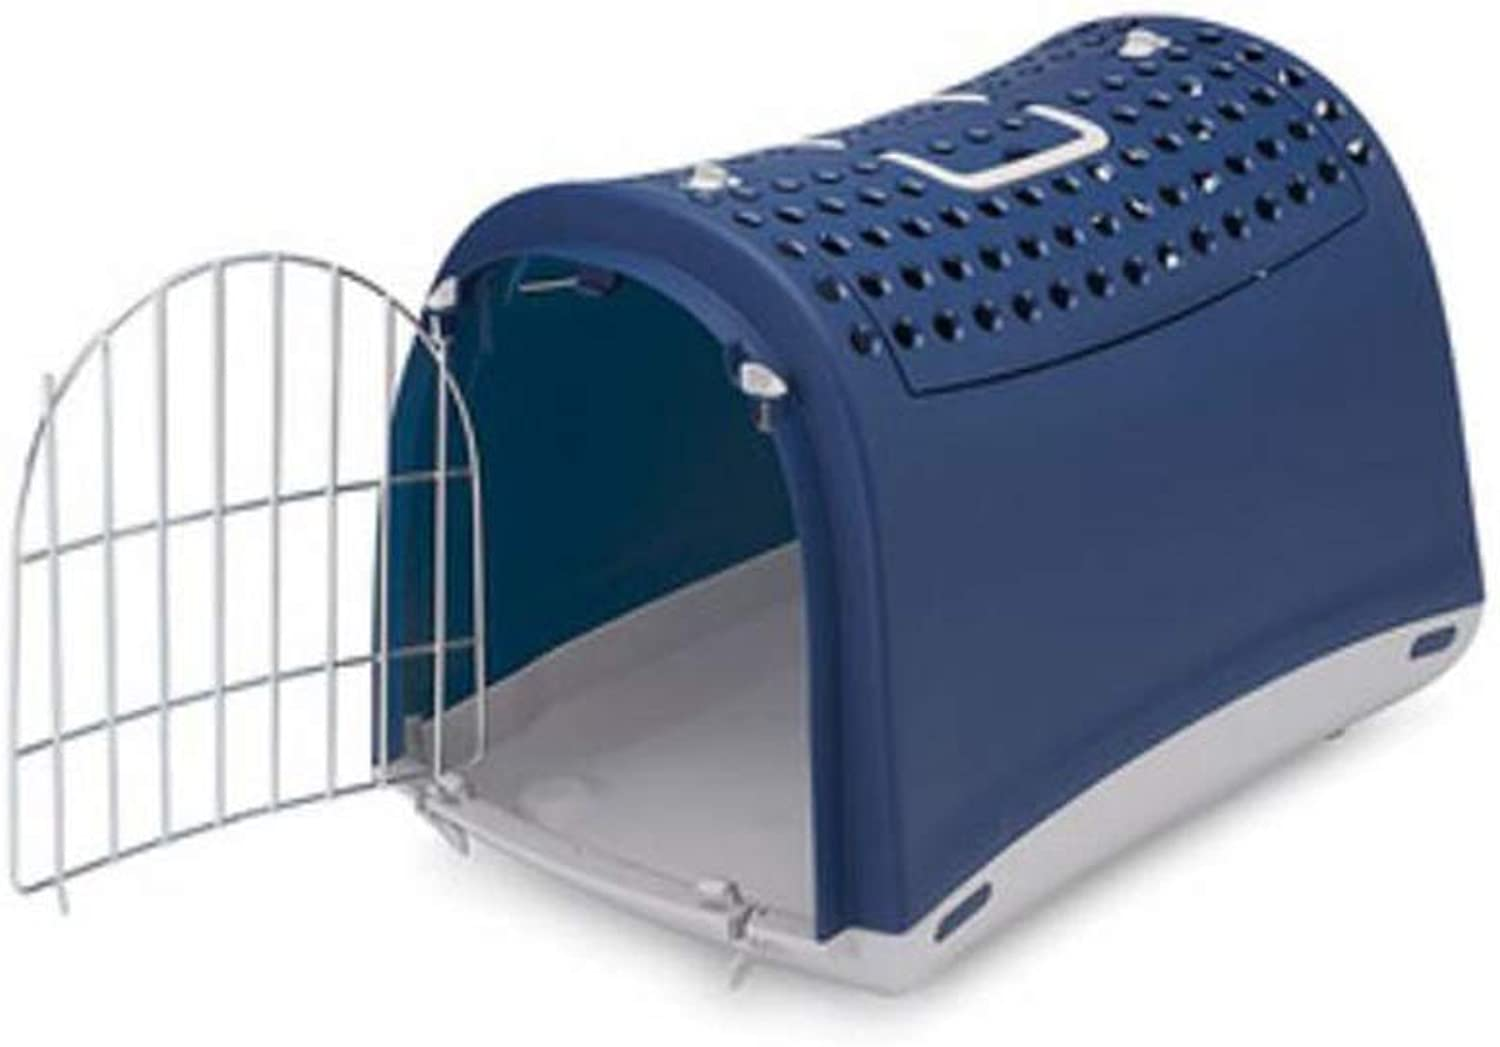 MIAOLIDP Pet Air Box  Dog Cat Outing Cage  Consignment  Skylight Portable Space Cat Bag  Cat Cage Pet cat carrier (color   bluee, Size   50x32x35cm)